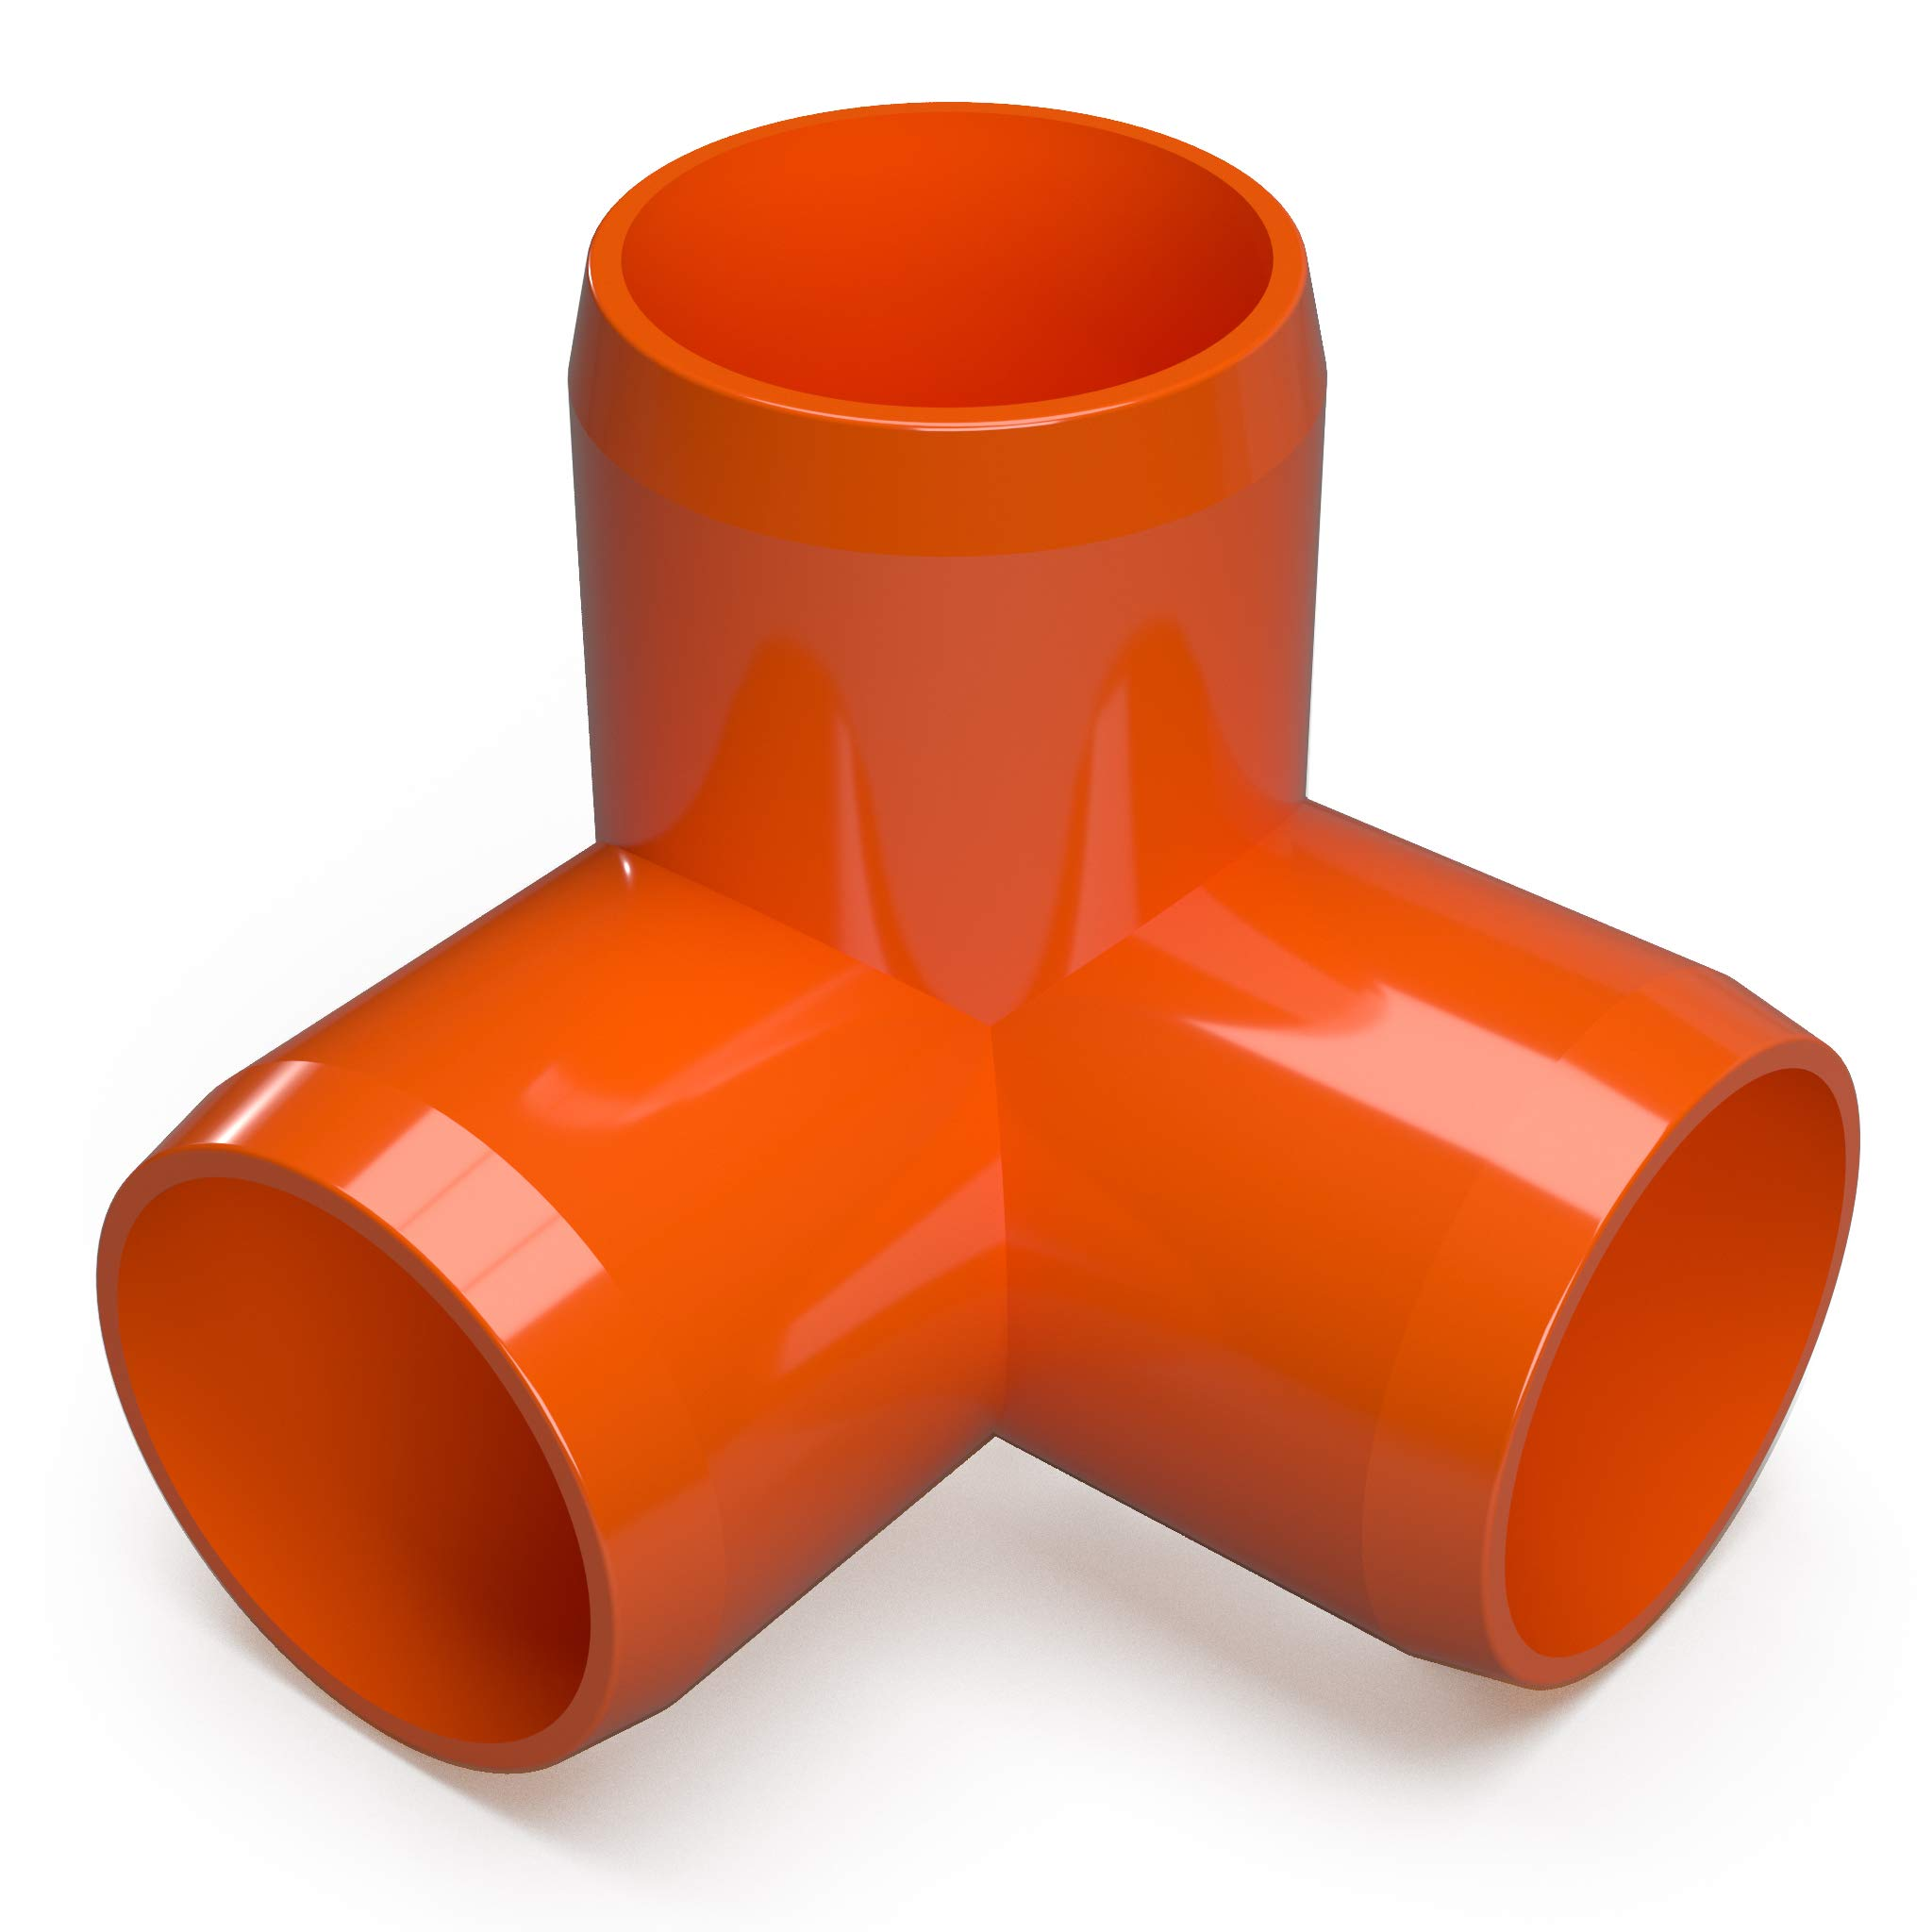 FORMUFIT F1143WE-OR-4 3-Way Elbow PVC Fitting, Furniture Grade, 1-1/4'' Size, Orange (Pack of 4)